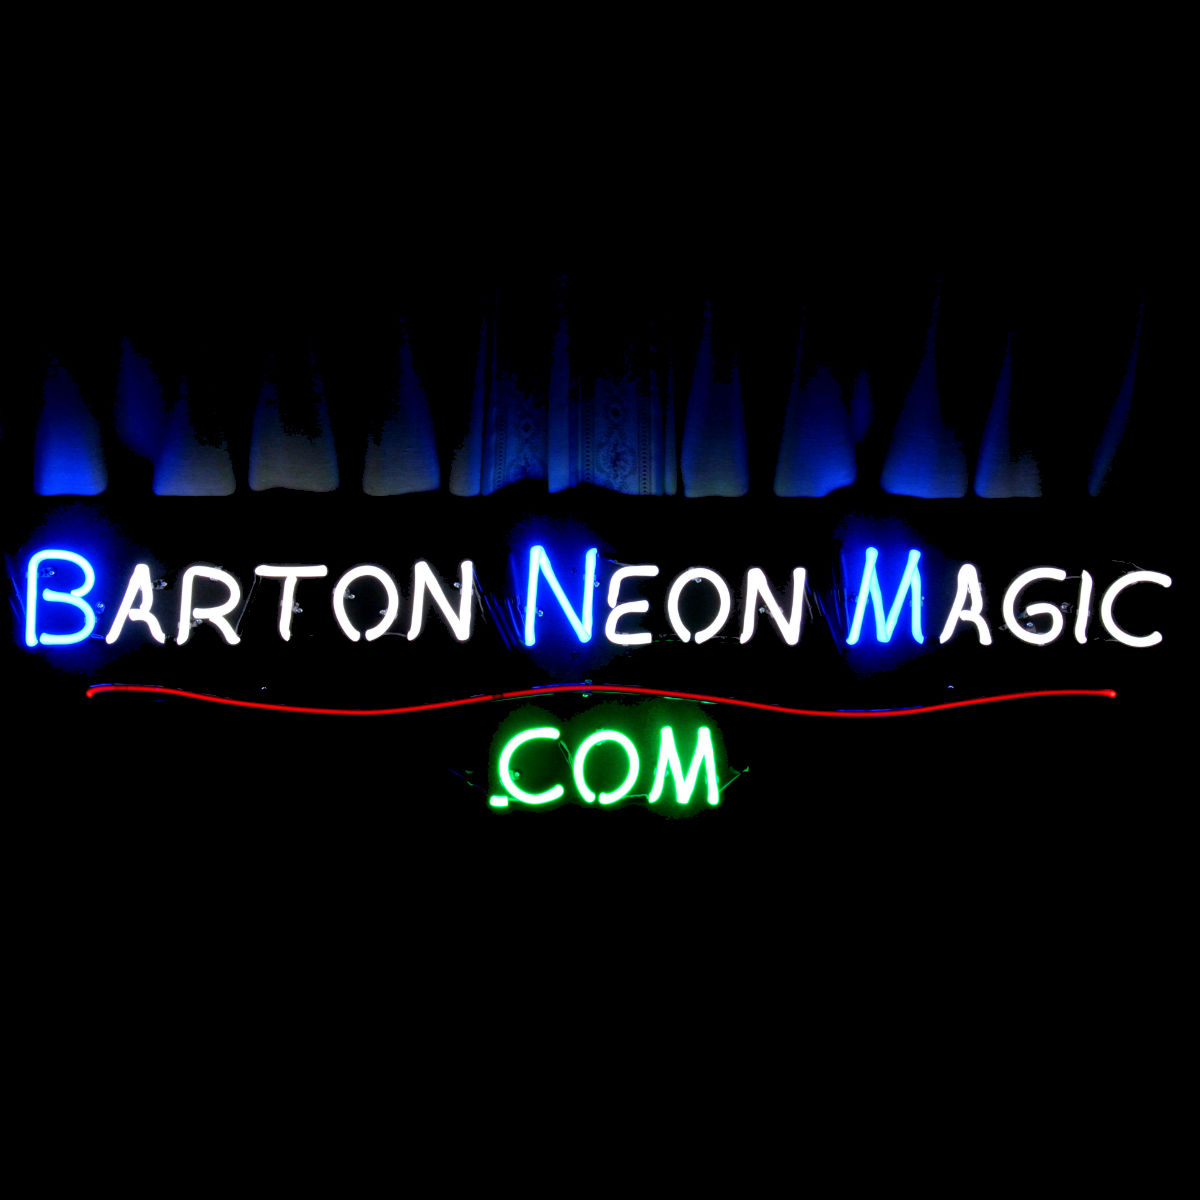 Custom hand-blown Designer Neon Light Fixtures by John Barton - BartonNeonMagic.com